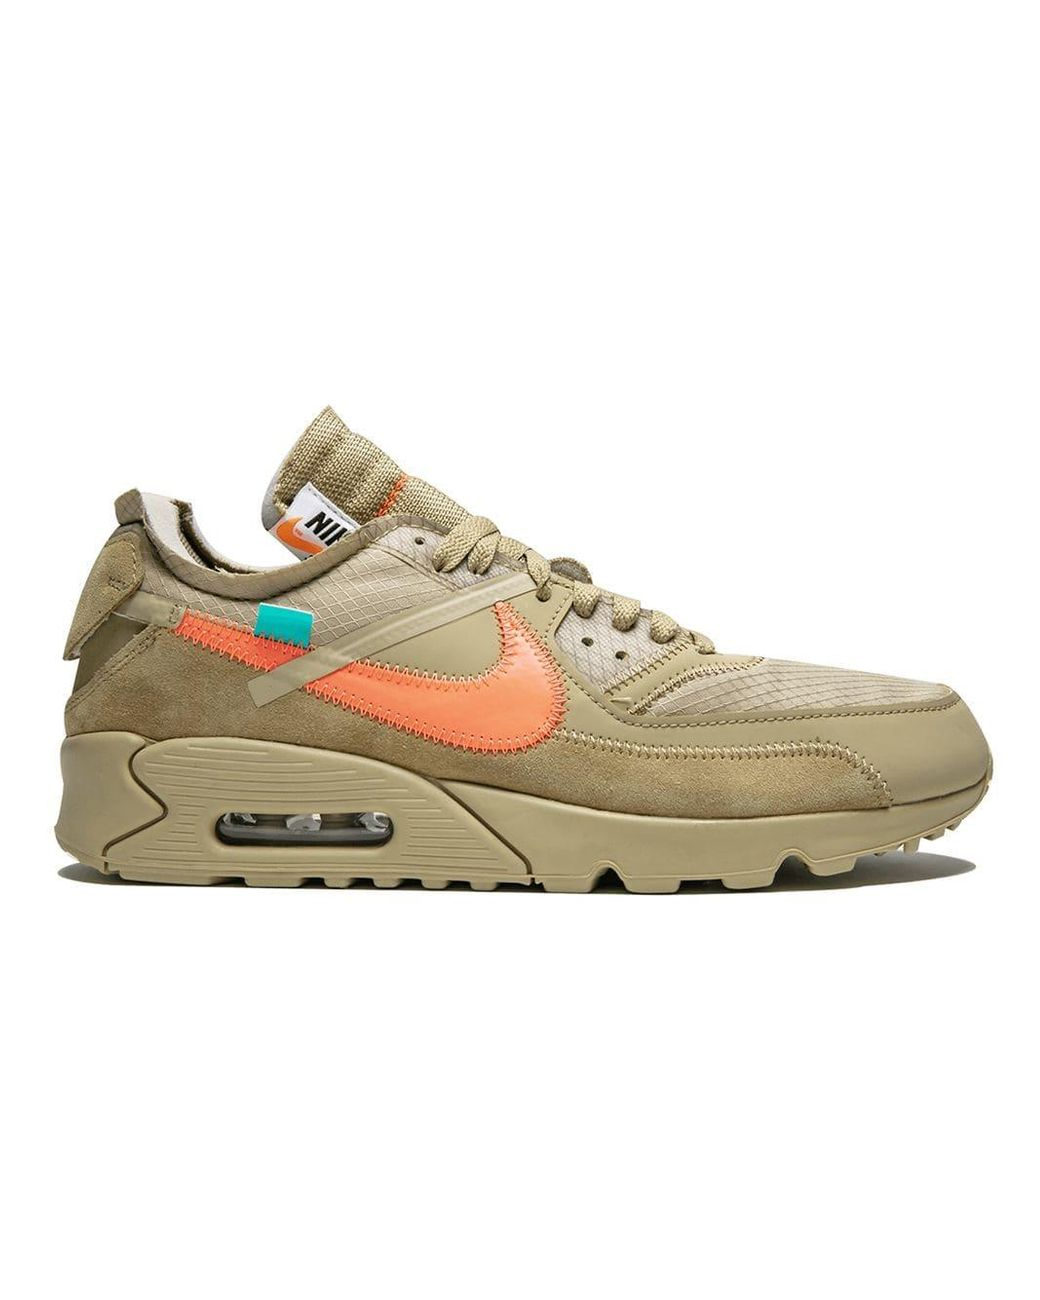 90 Max 10Air 6 'off Desert Size White Ore' The Men's mN8OPyvnw0